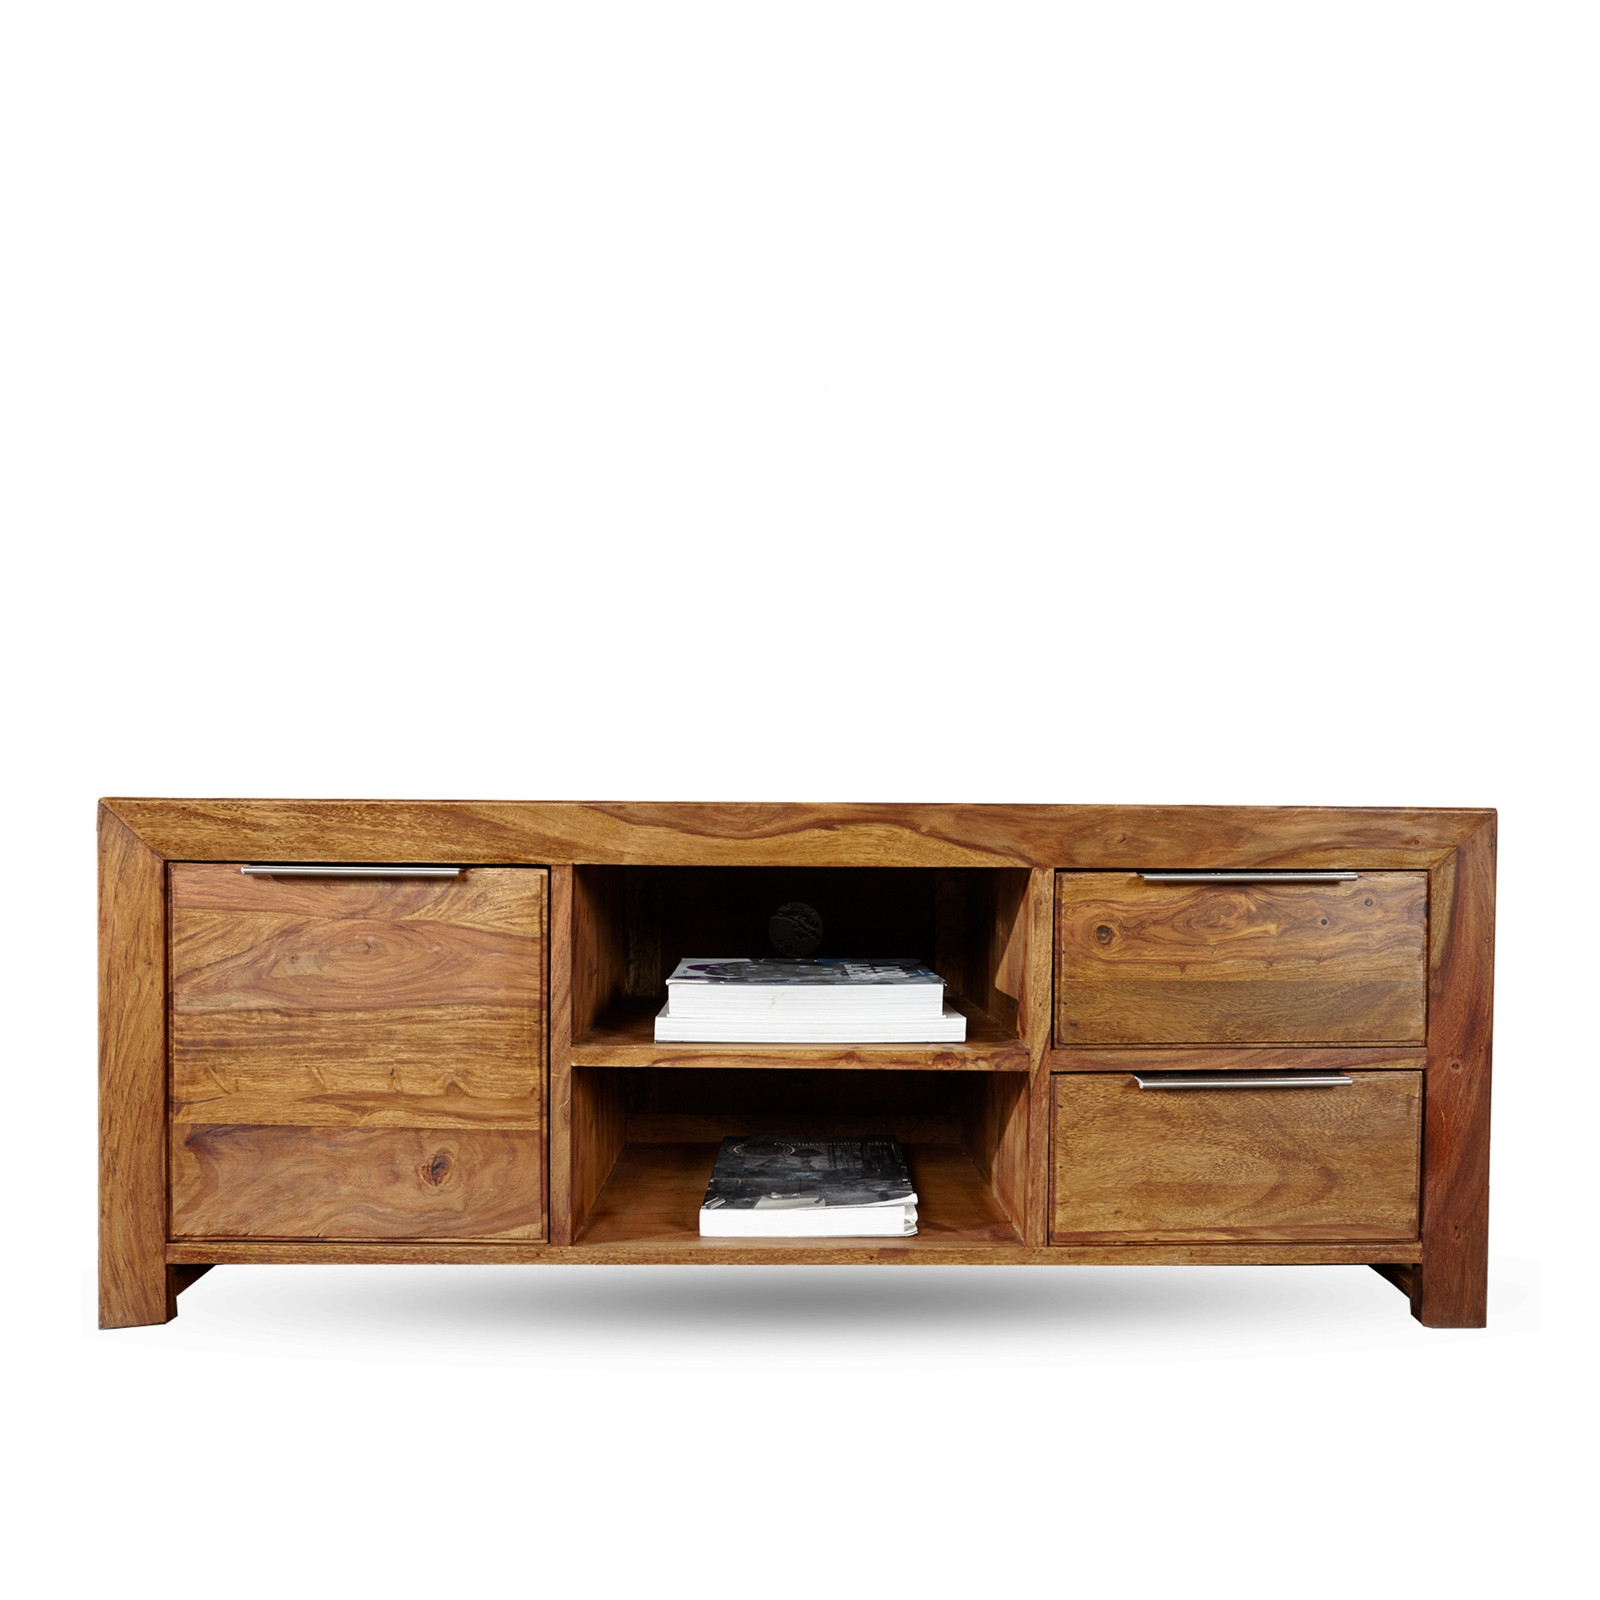 Wooden Tv Rack Borneo Sheesham 53x19 5x17 5